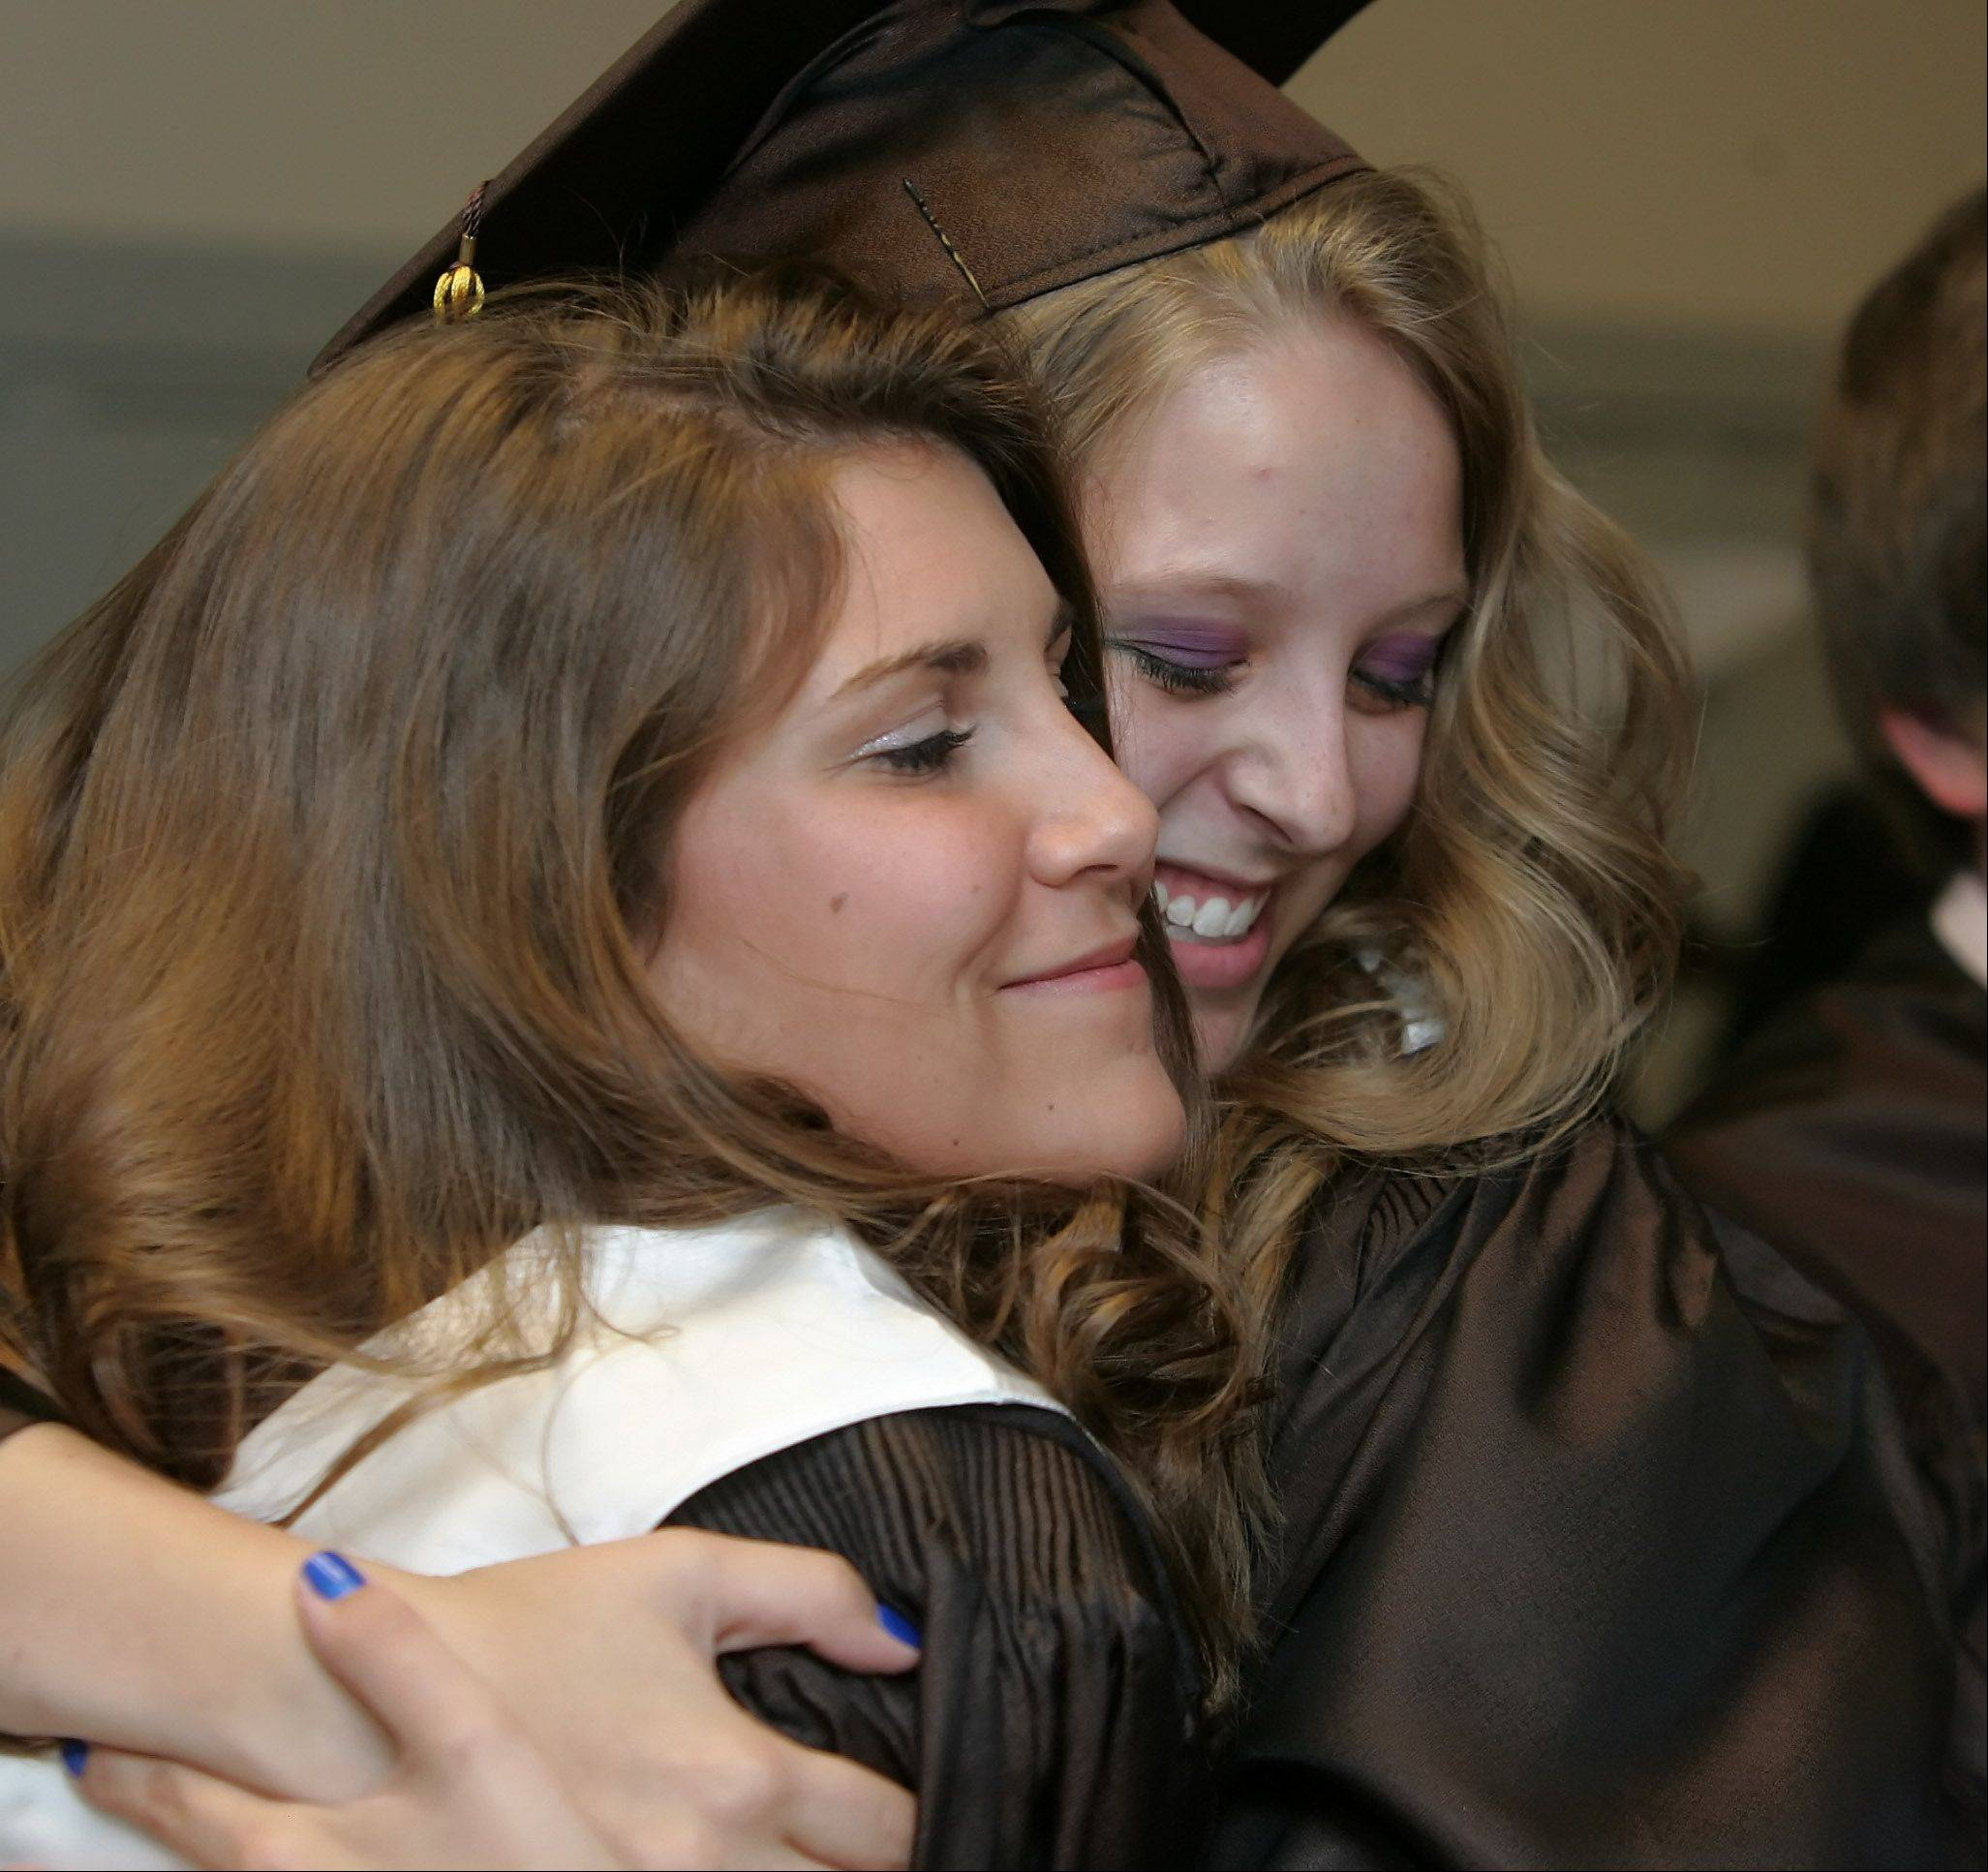 Shelby Lueders, left, embraces Nikki Roy before graduation at Carmel Catholic High School Thursday at the school in Mundelein. The 2012 class consists of 360 graduates.